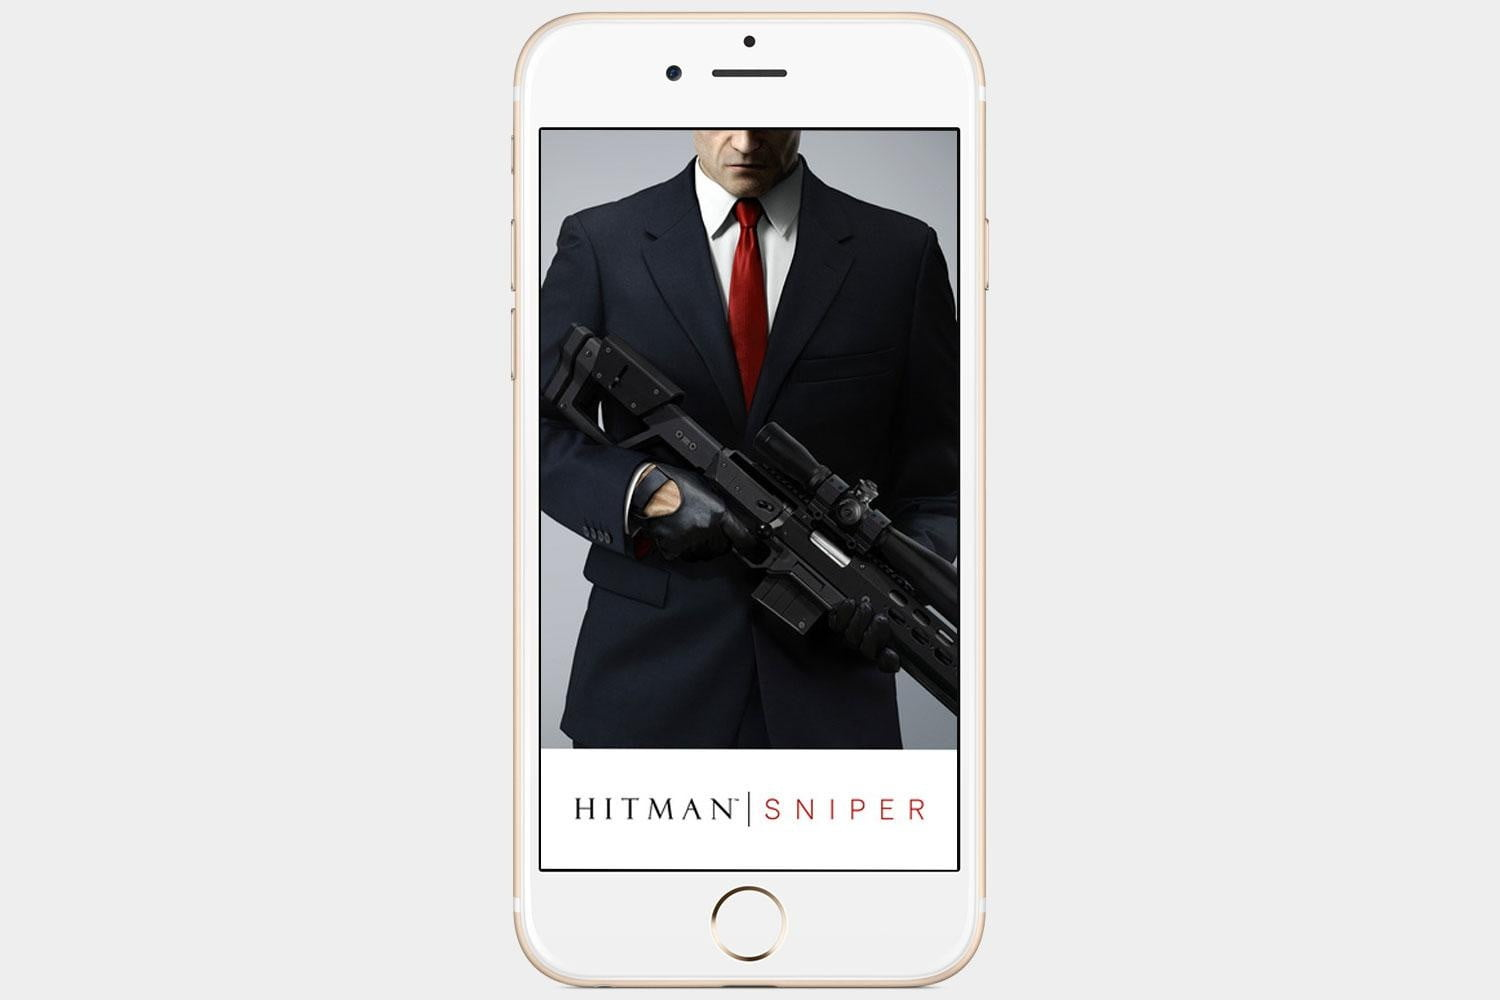 hitman-sniper-for-ios